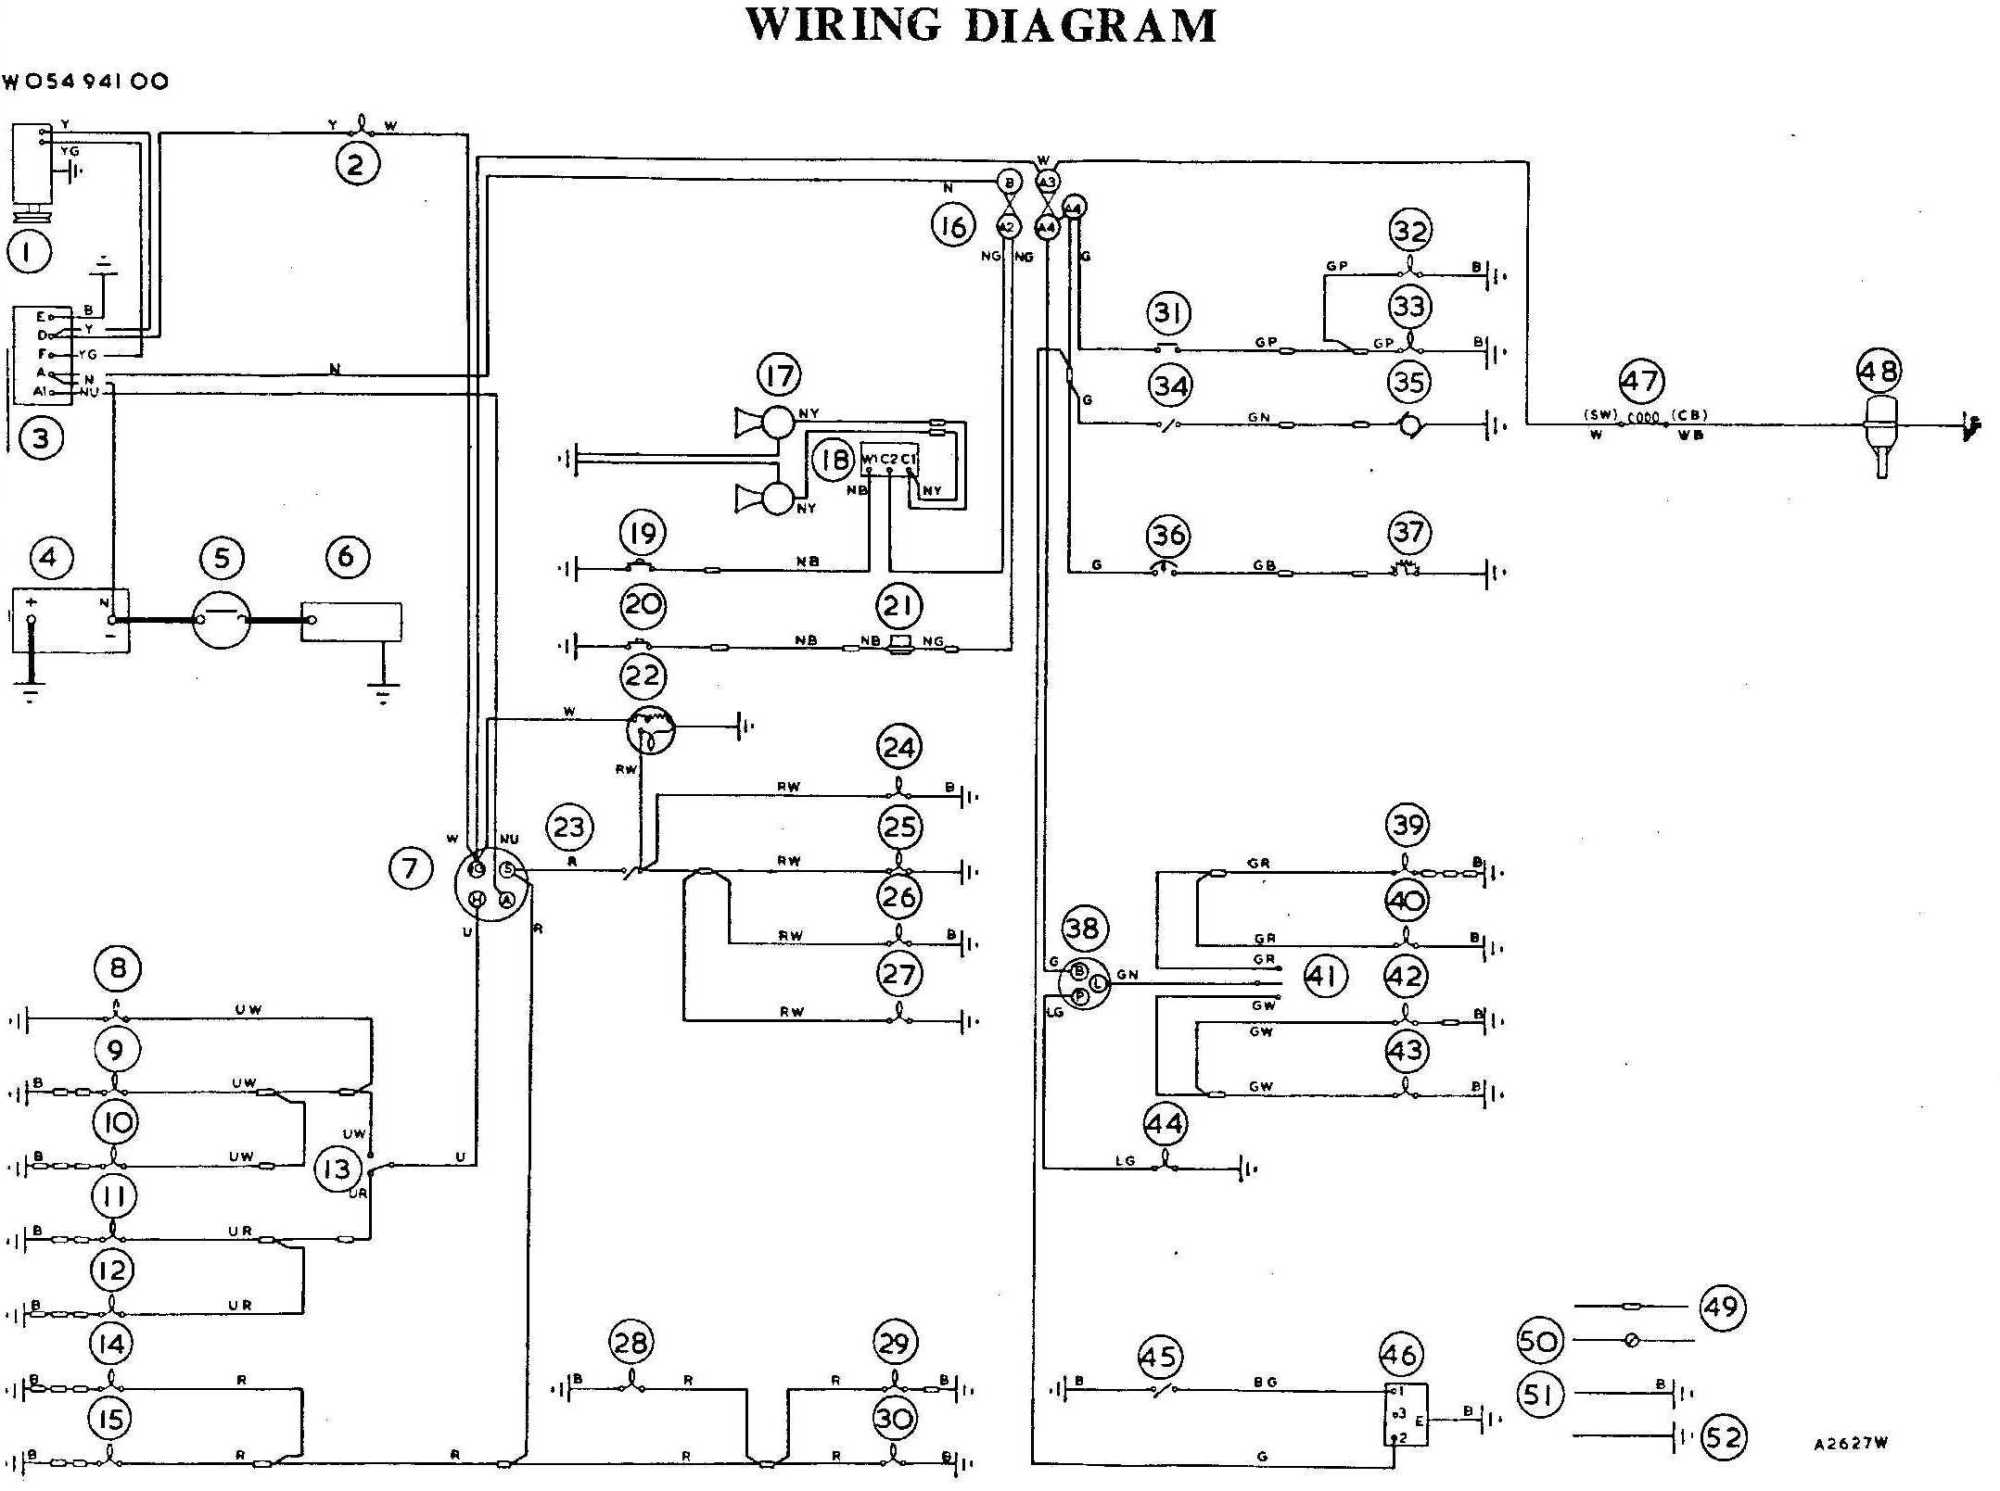 hight resolution of garage wiring diagrams private sharing about wiring diagram u2022 rh caraccessoriesandsoftware co uk